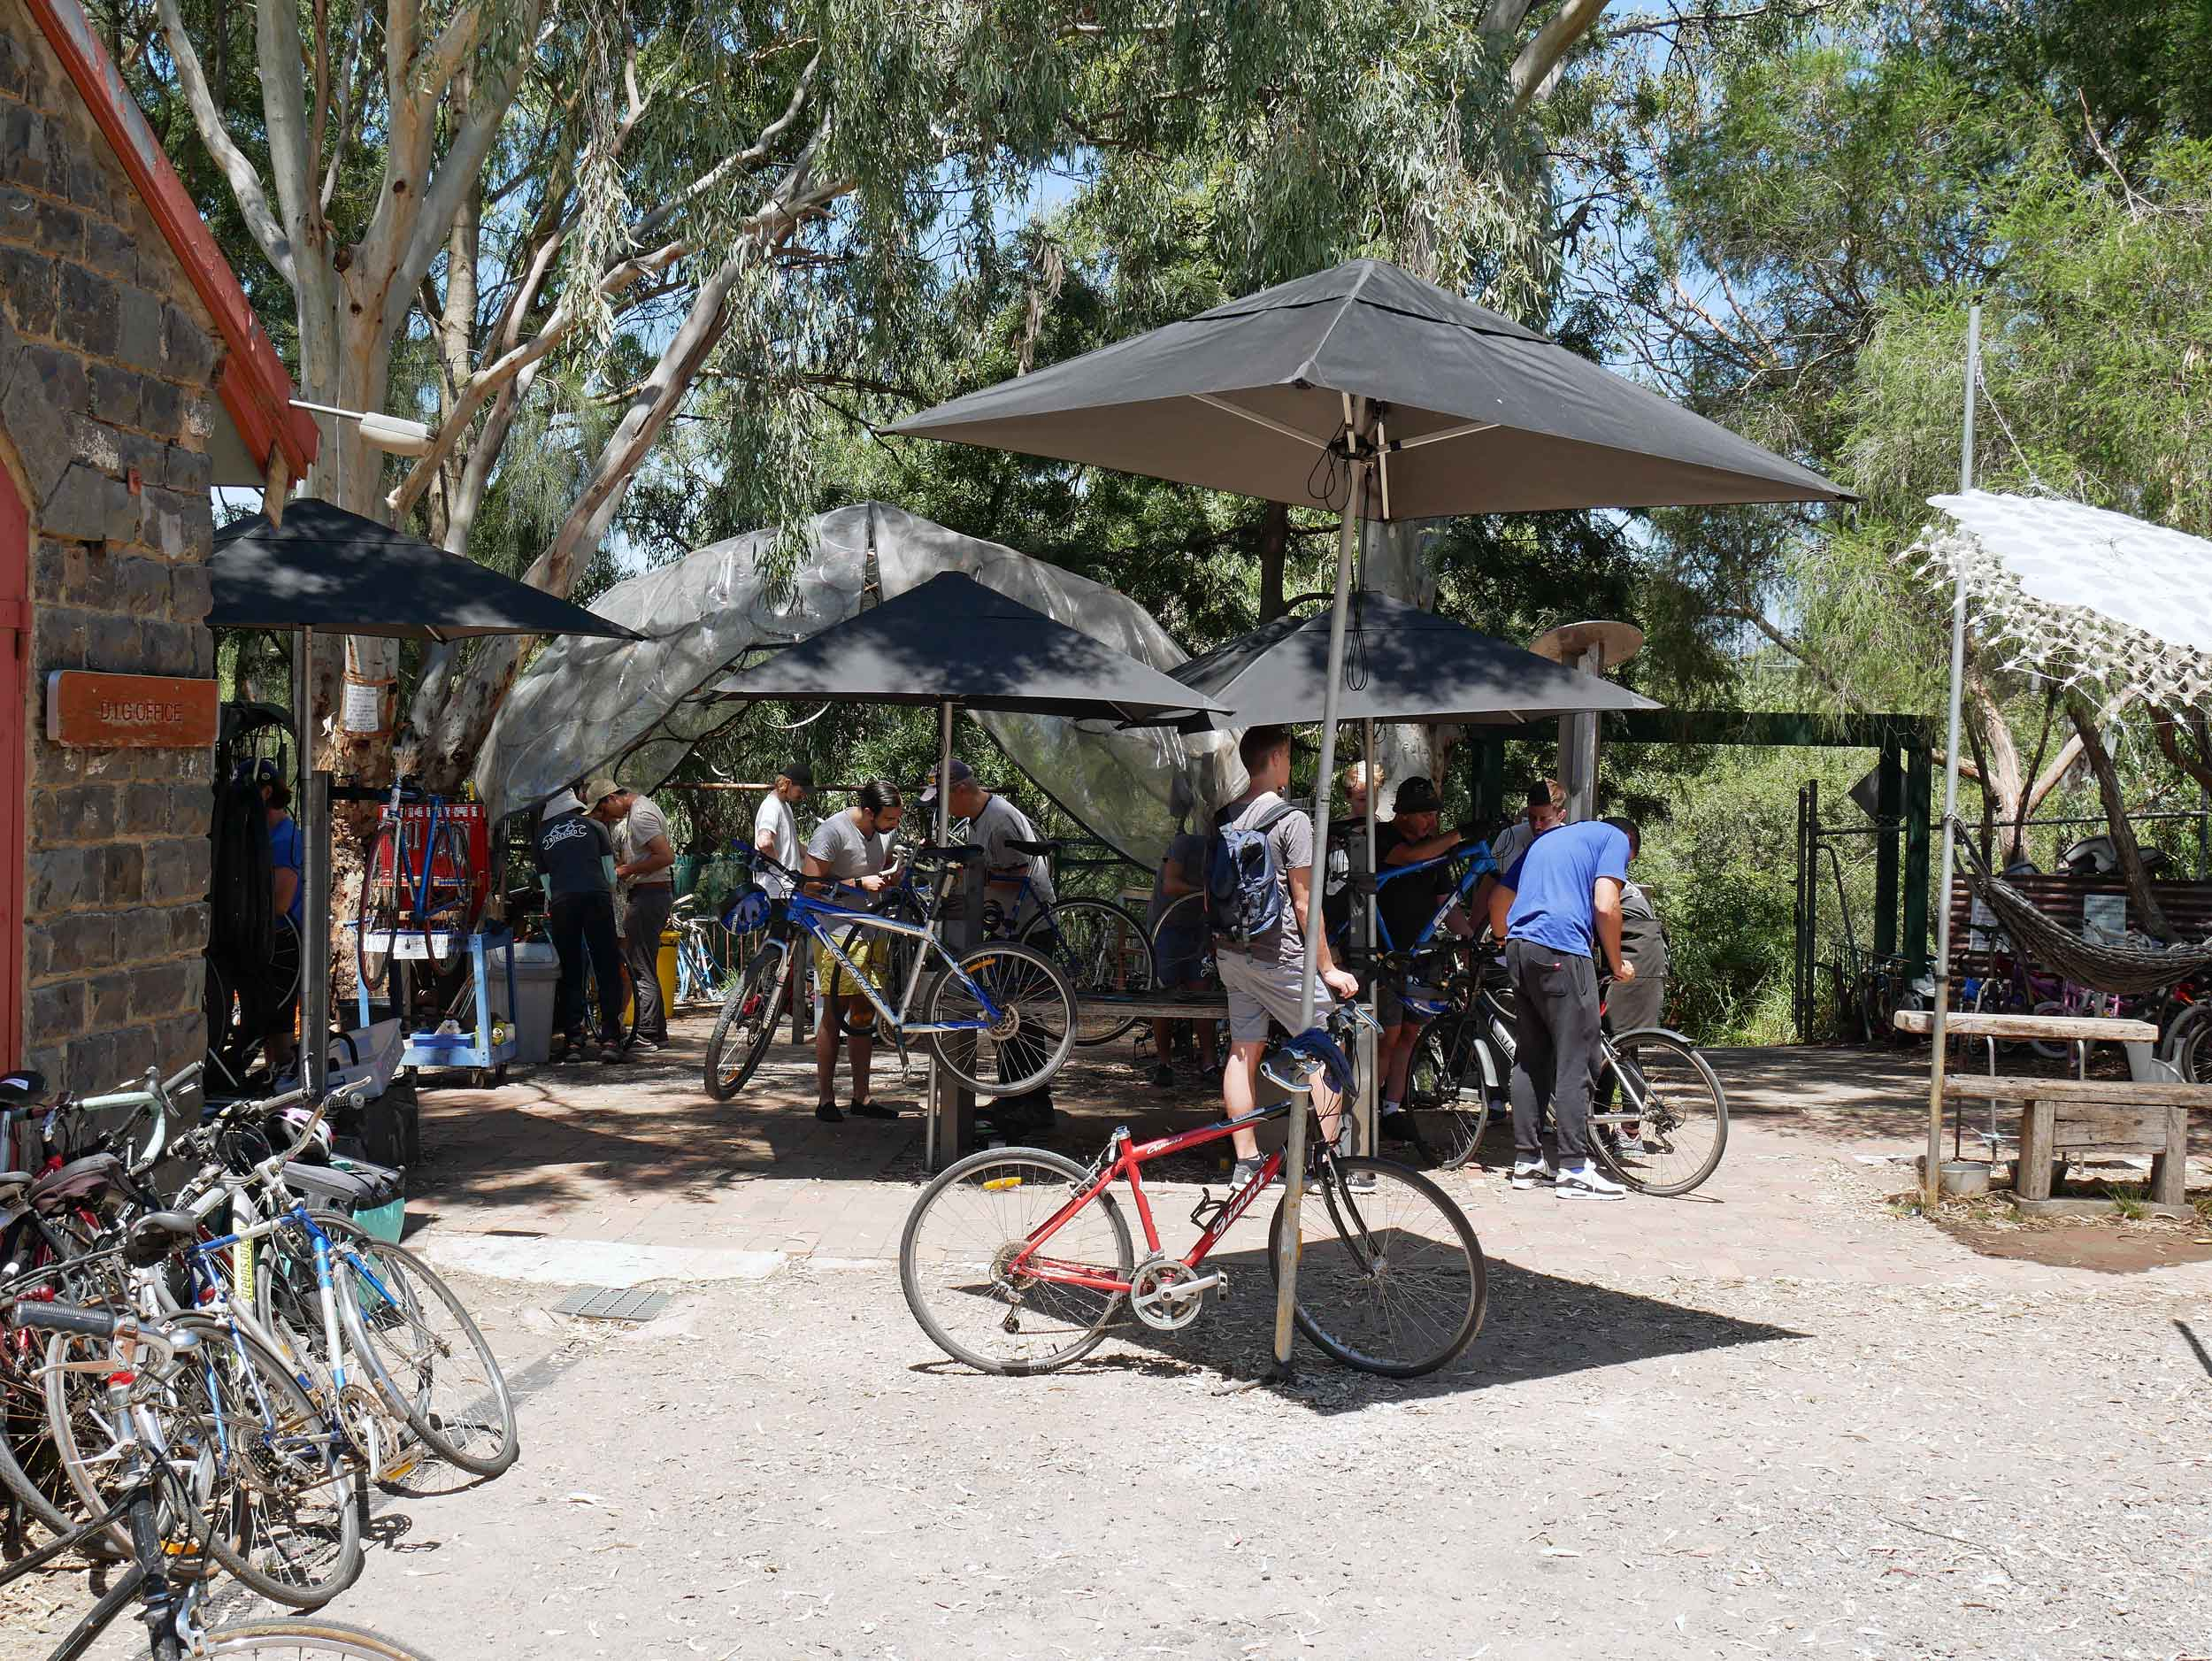 Bike troubles? No worries, you can learn how to fix it (or build a new one from spare parts available for free!) at the DIY CERES Bike Shed manned by knowledgeable volunteers (Jan 26).